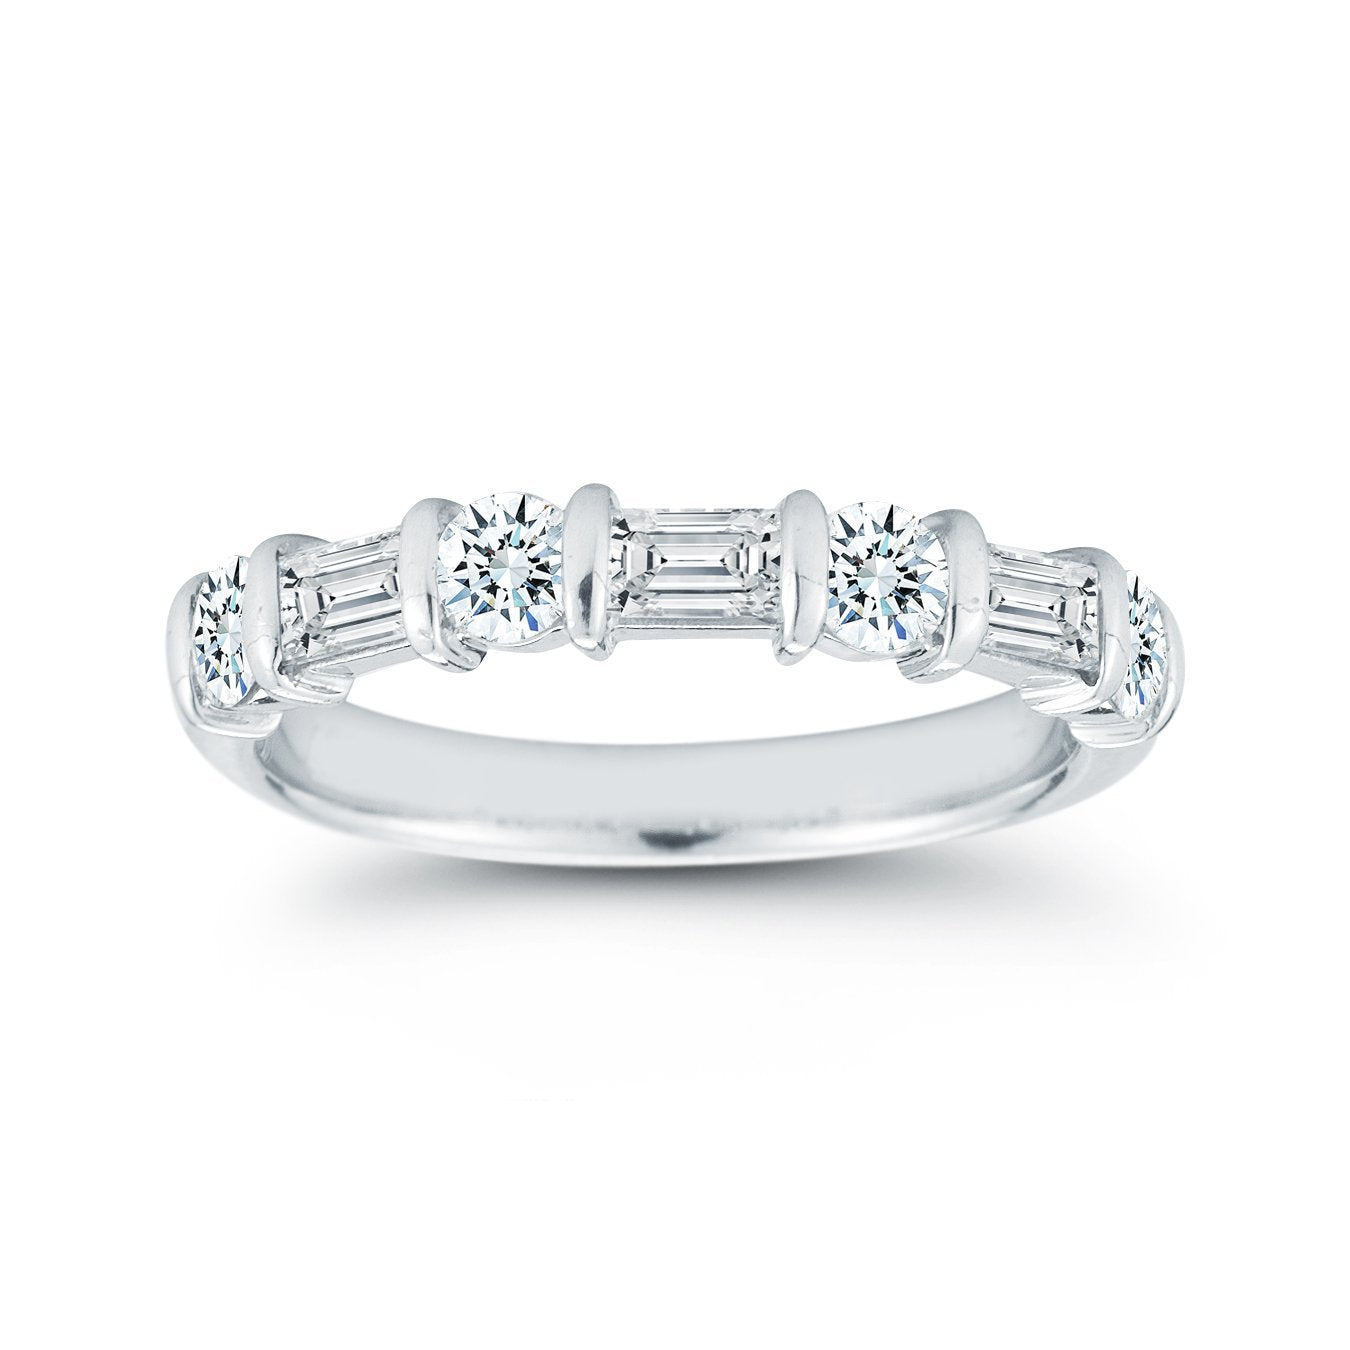 Platinum Alternating Round and Baquette Diamond Wedding Ring